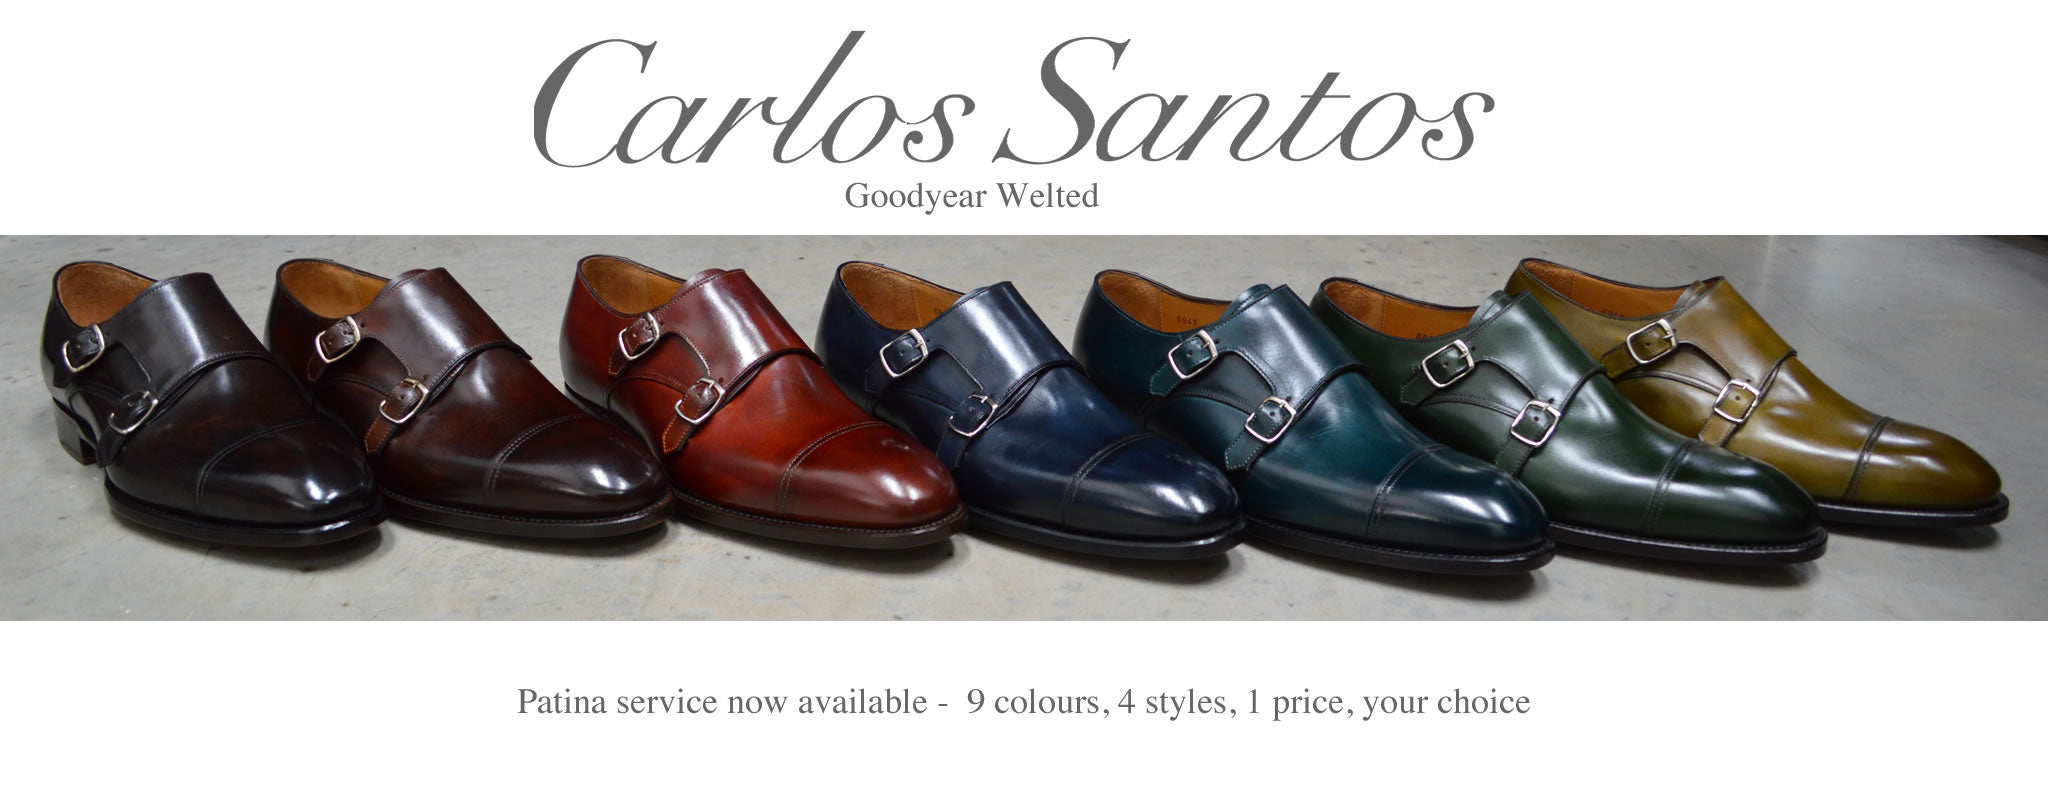 Carlos Santos - A Fine Pair of Shoes